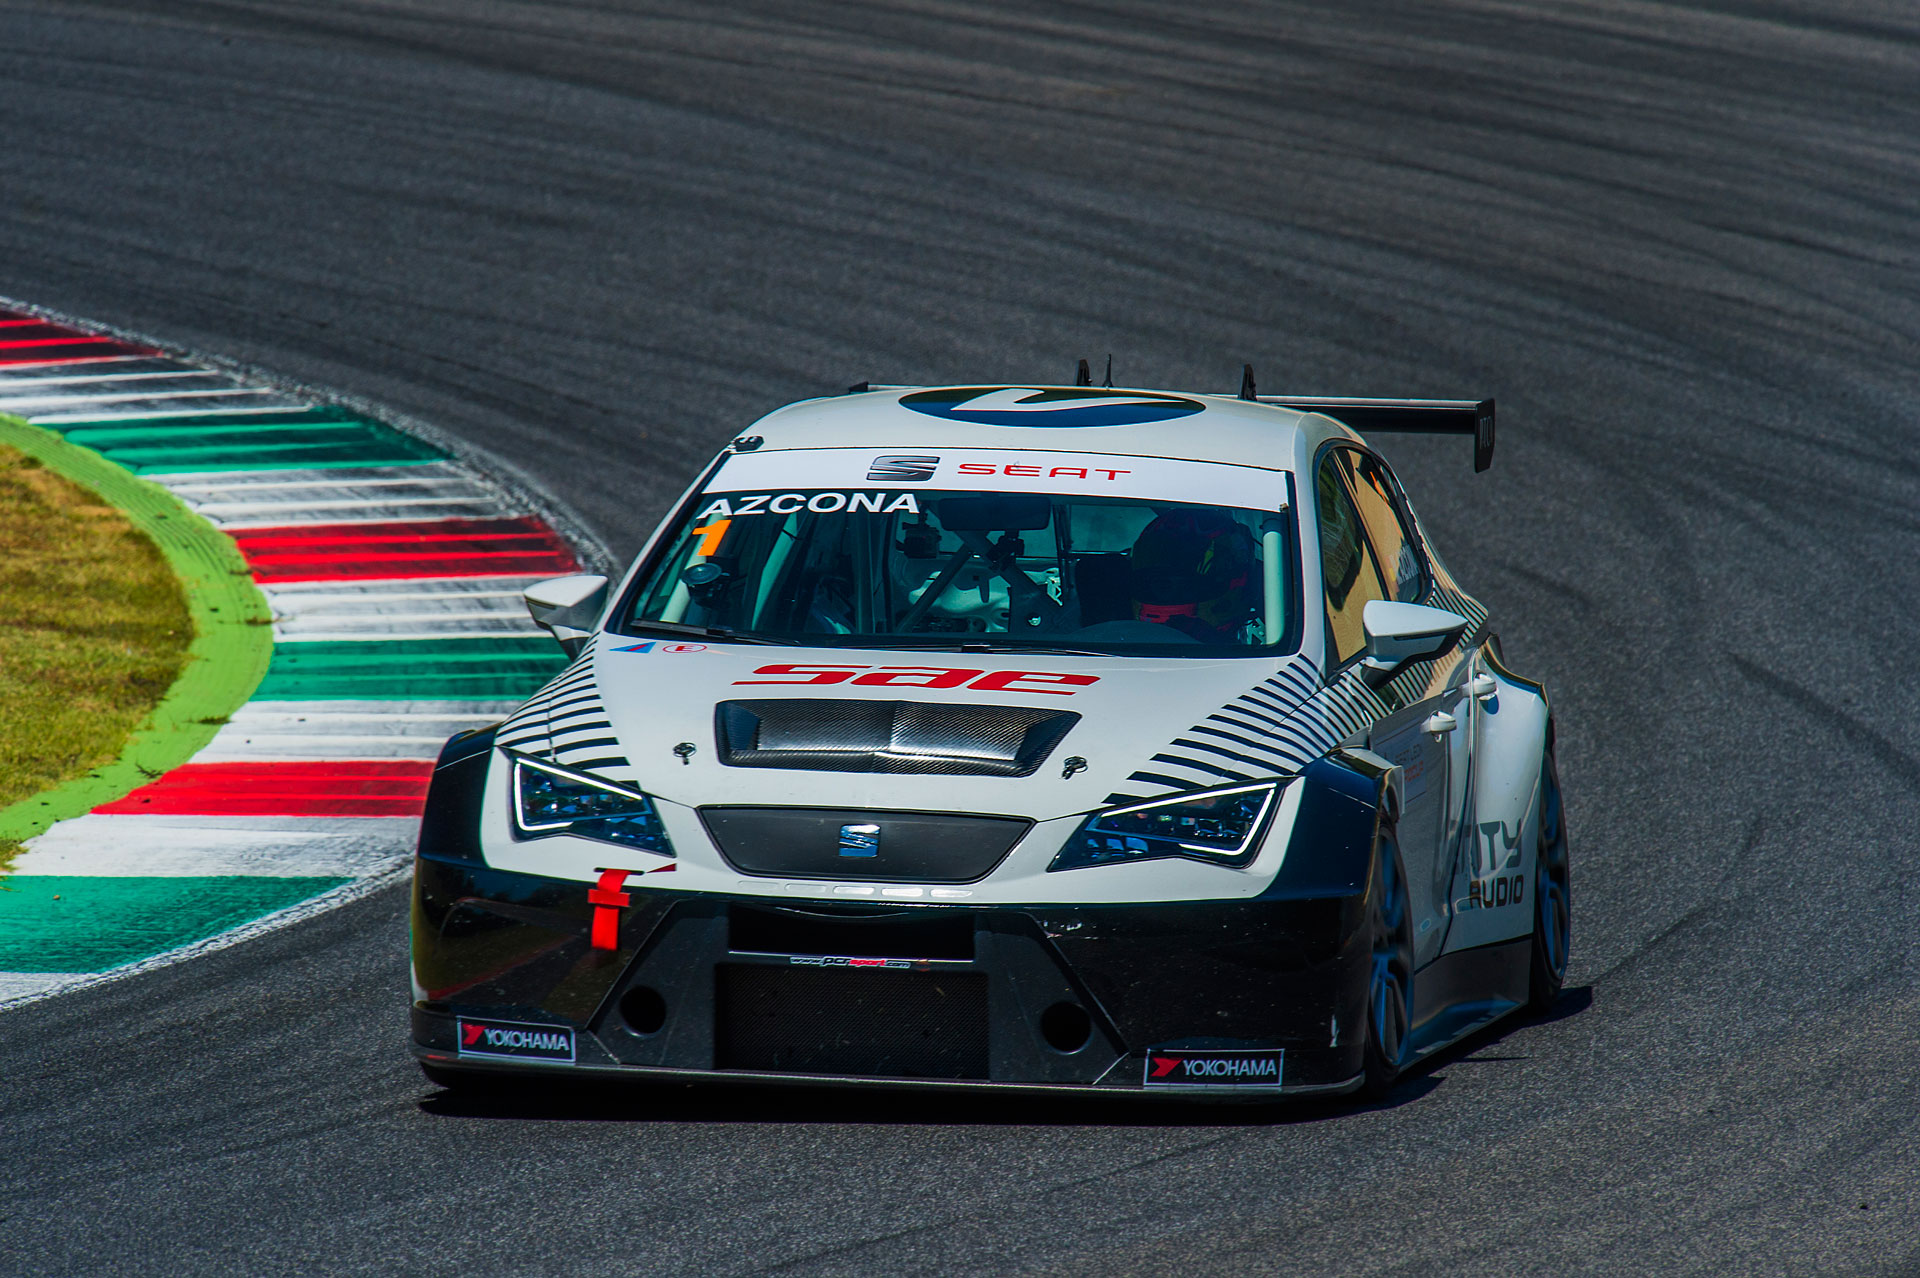 Mikel Azcona rediscovers again with the victory in Mugello